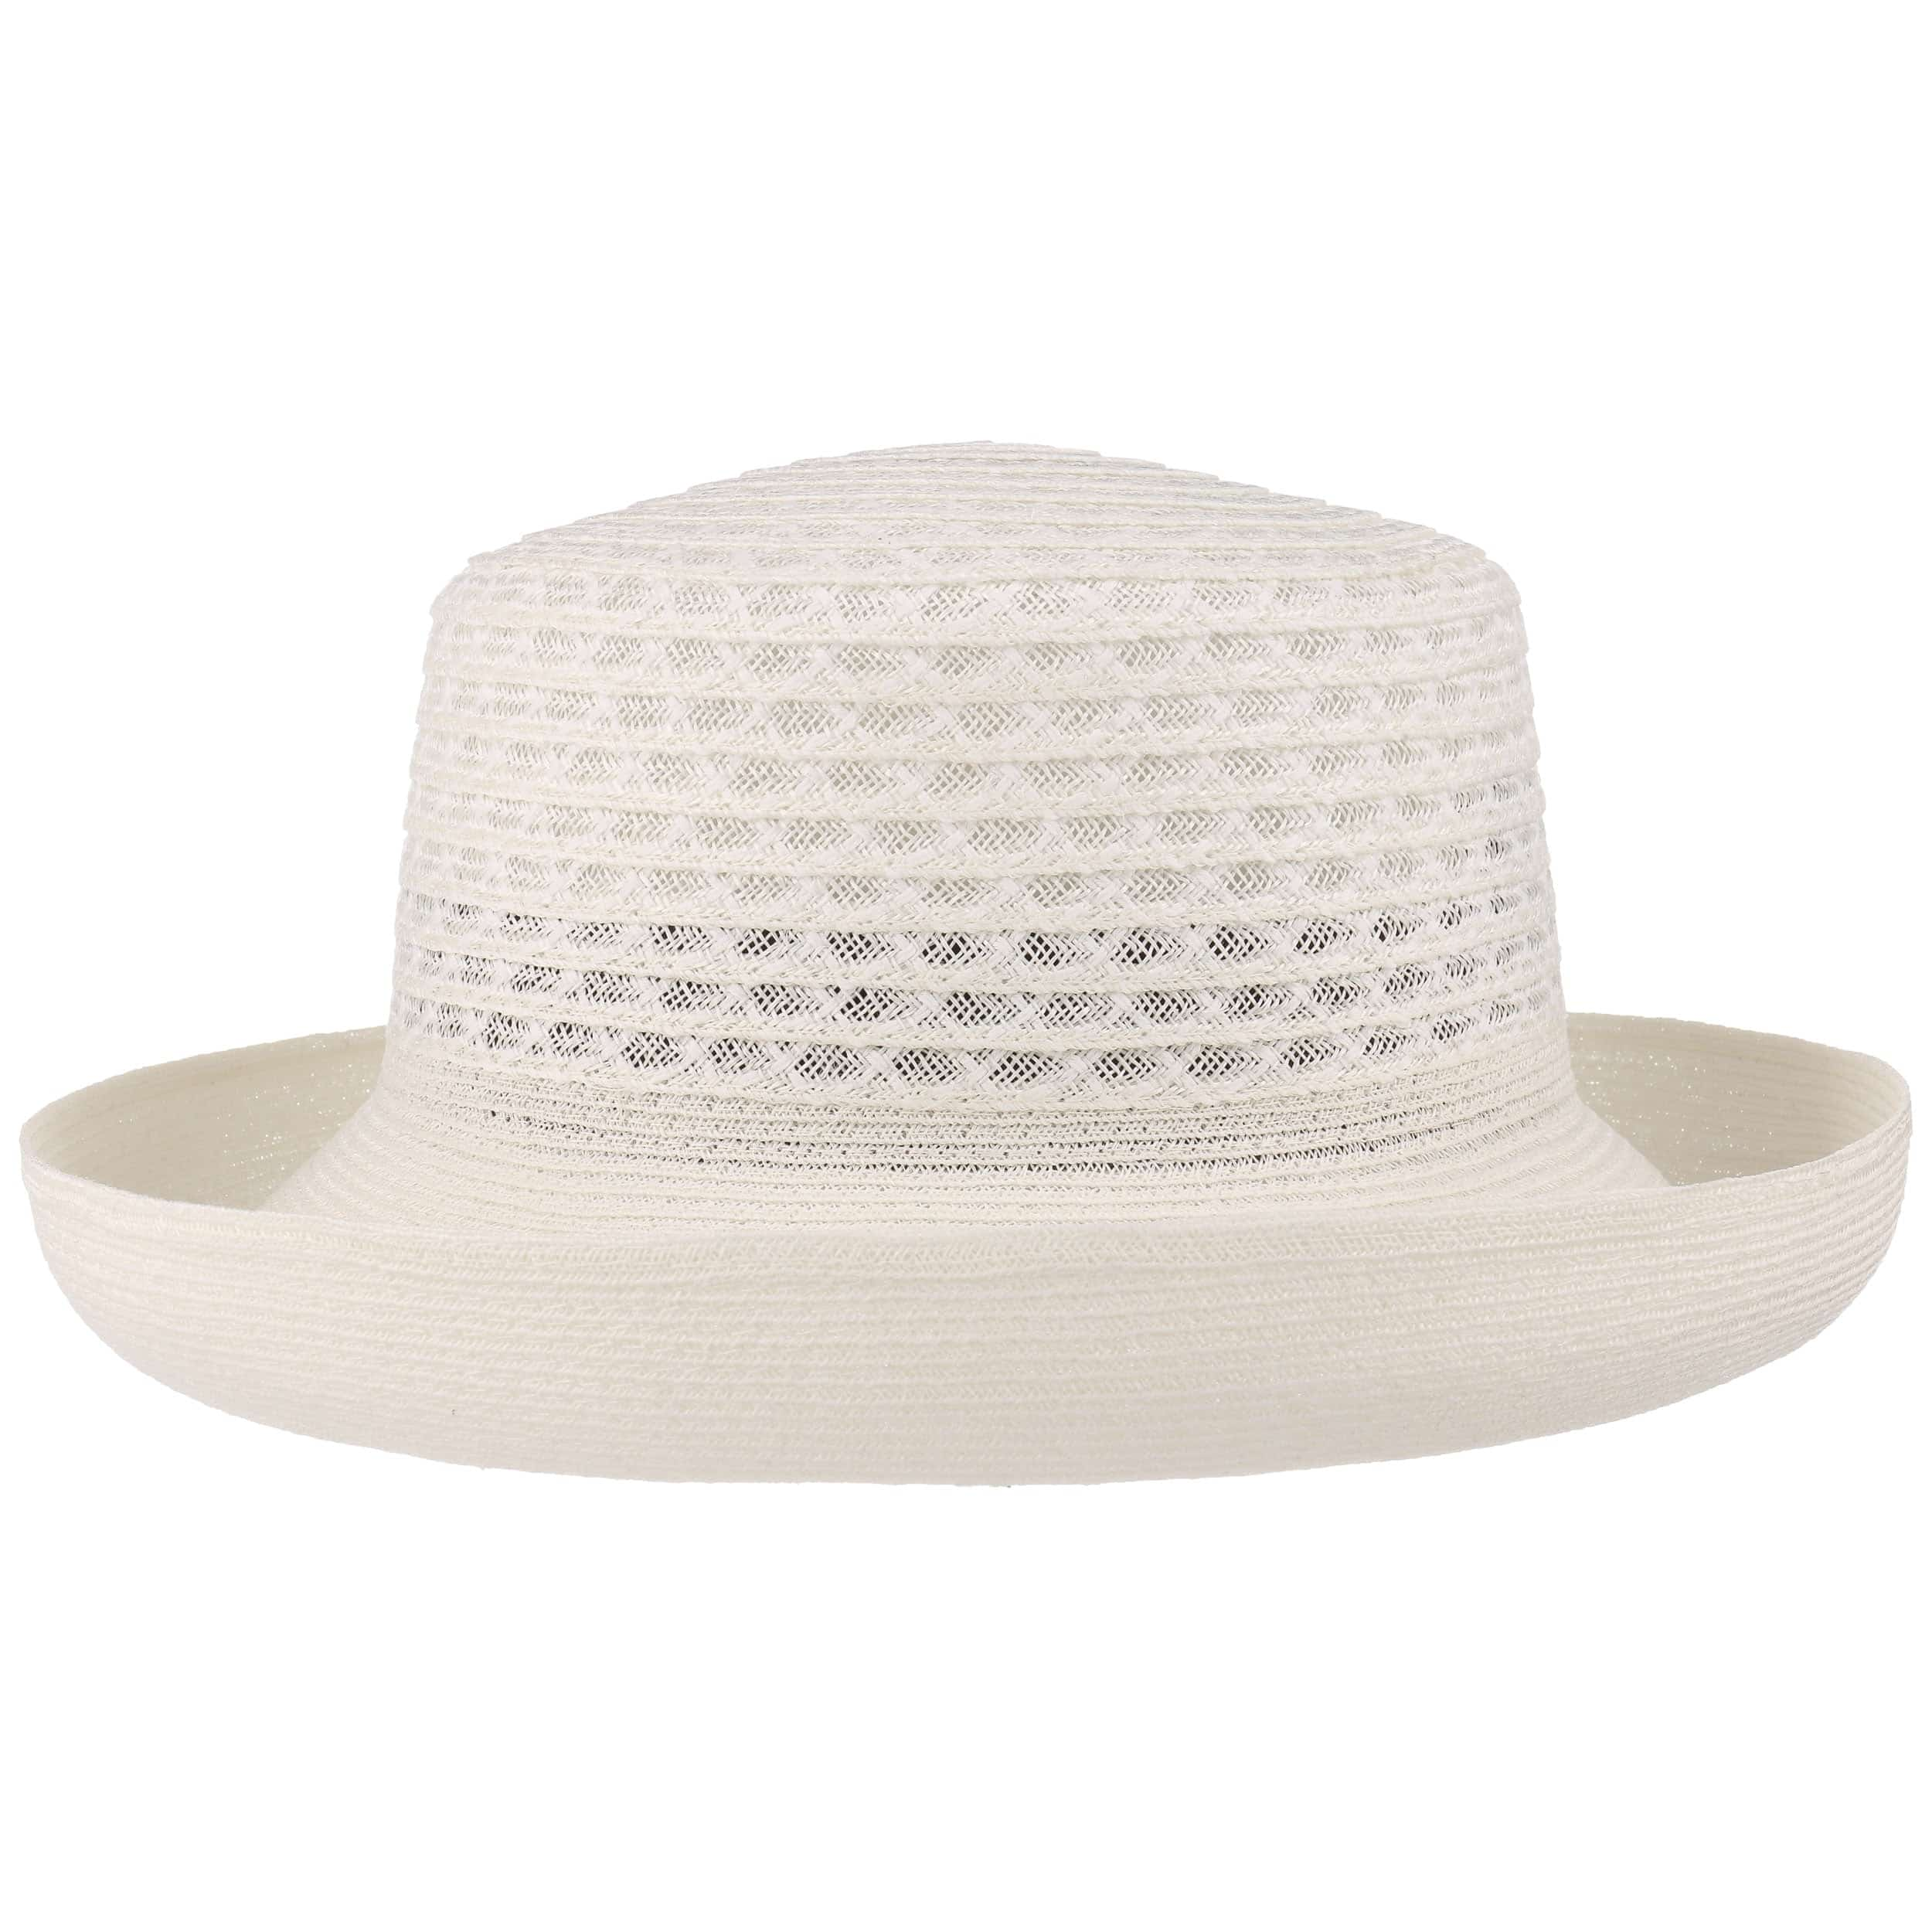 Jennifer Upward Brimmed Hat by Lierys Sun hats Lierys Cheap Sale Brand New Unisex Top Quality Free Shipping Finishline Pre Order For Sale Big Discount poMq1